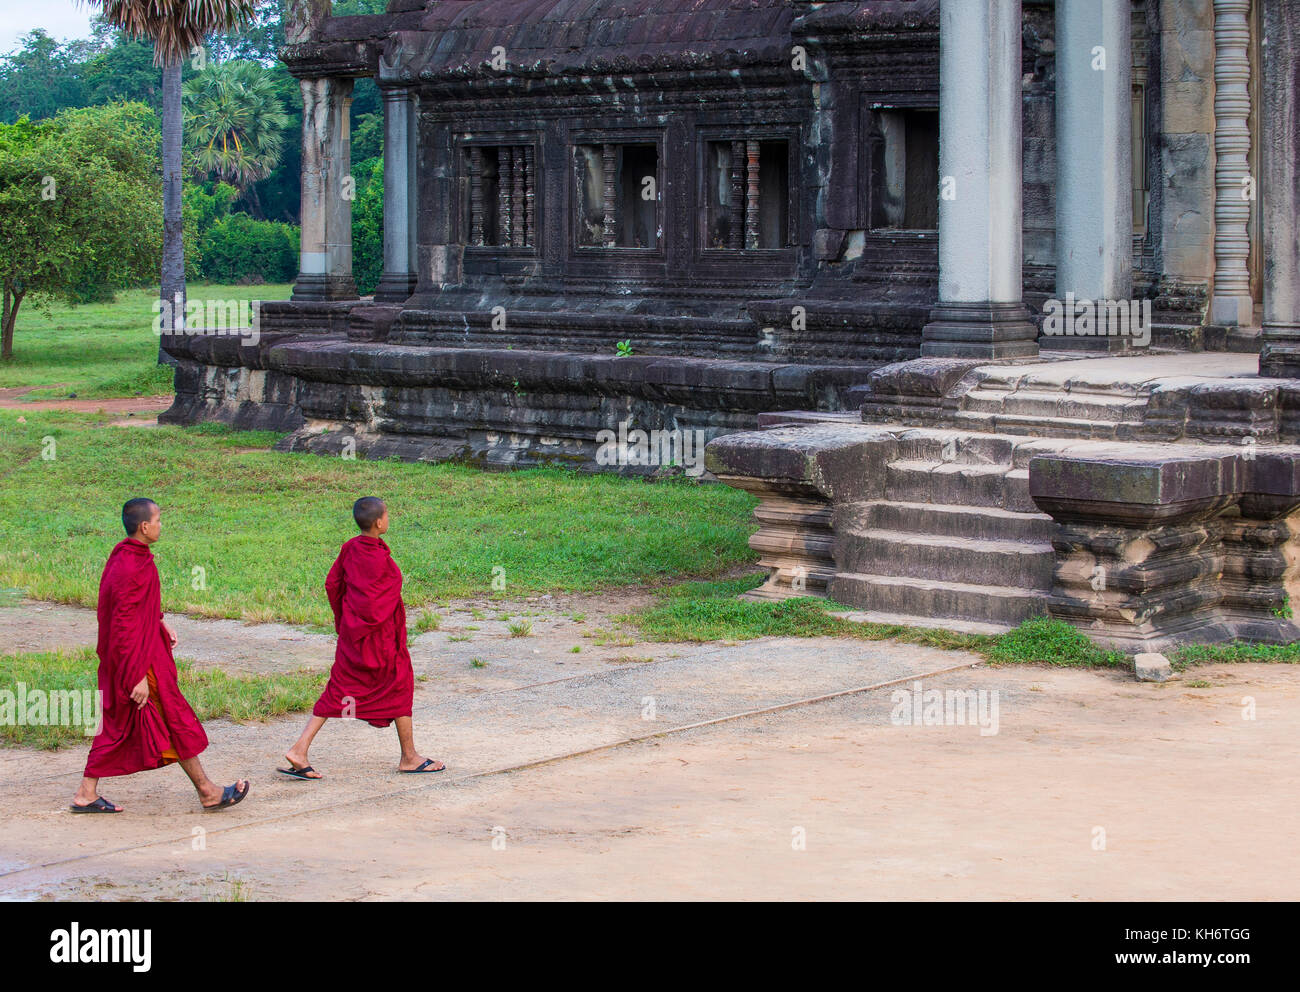 Budhist monks at the Angkor Wat Temple in Siem Reap Cambodia Stock Photo